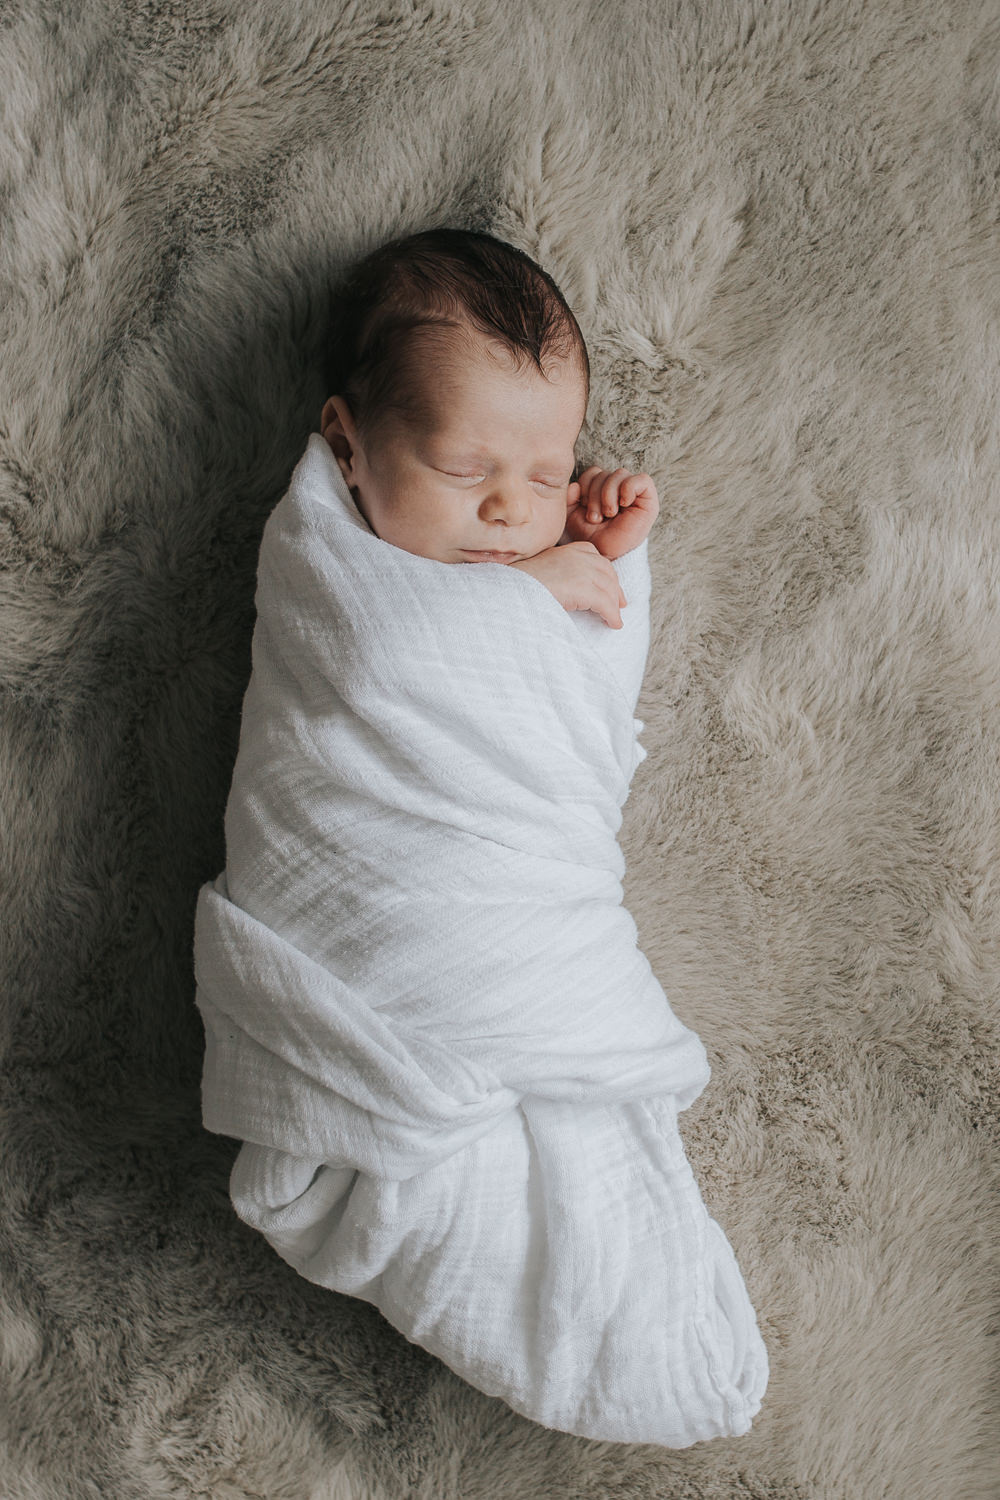 2 week old baby boy with dark hair lying on fur blanket in white swaddle, sleeping with hands next to face - Markham Lifestyle Photography